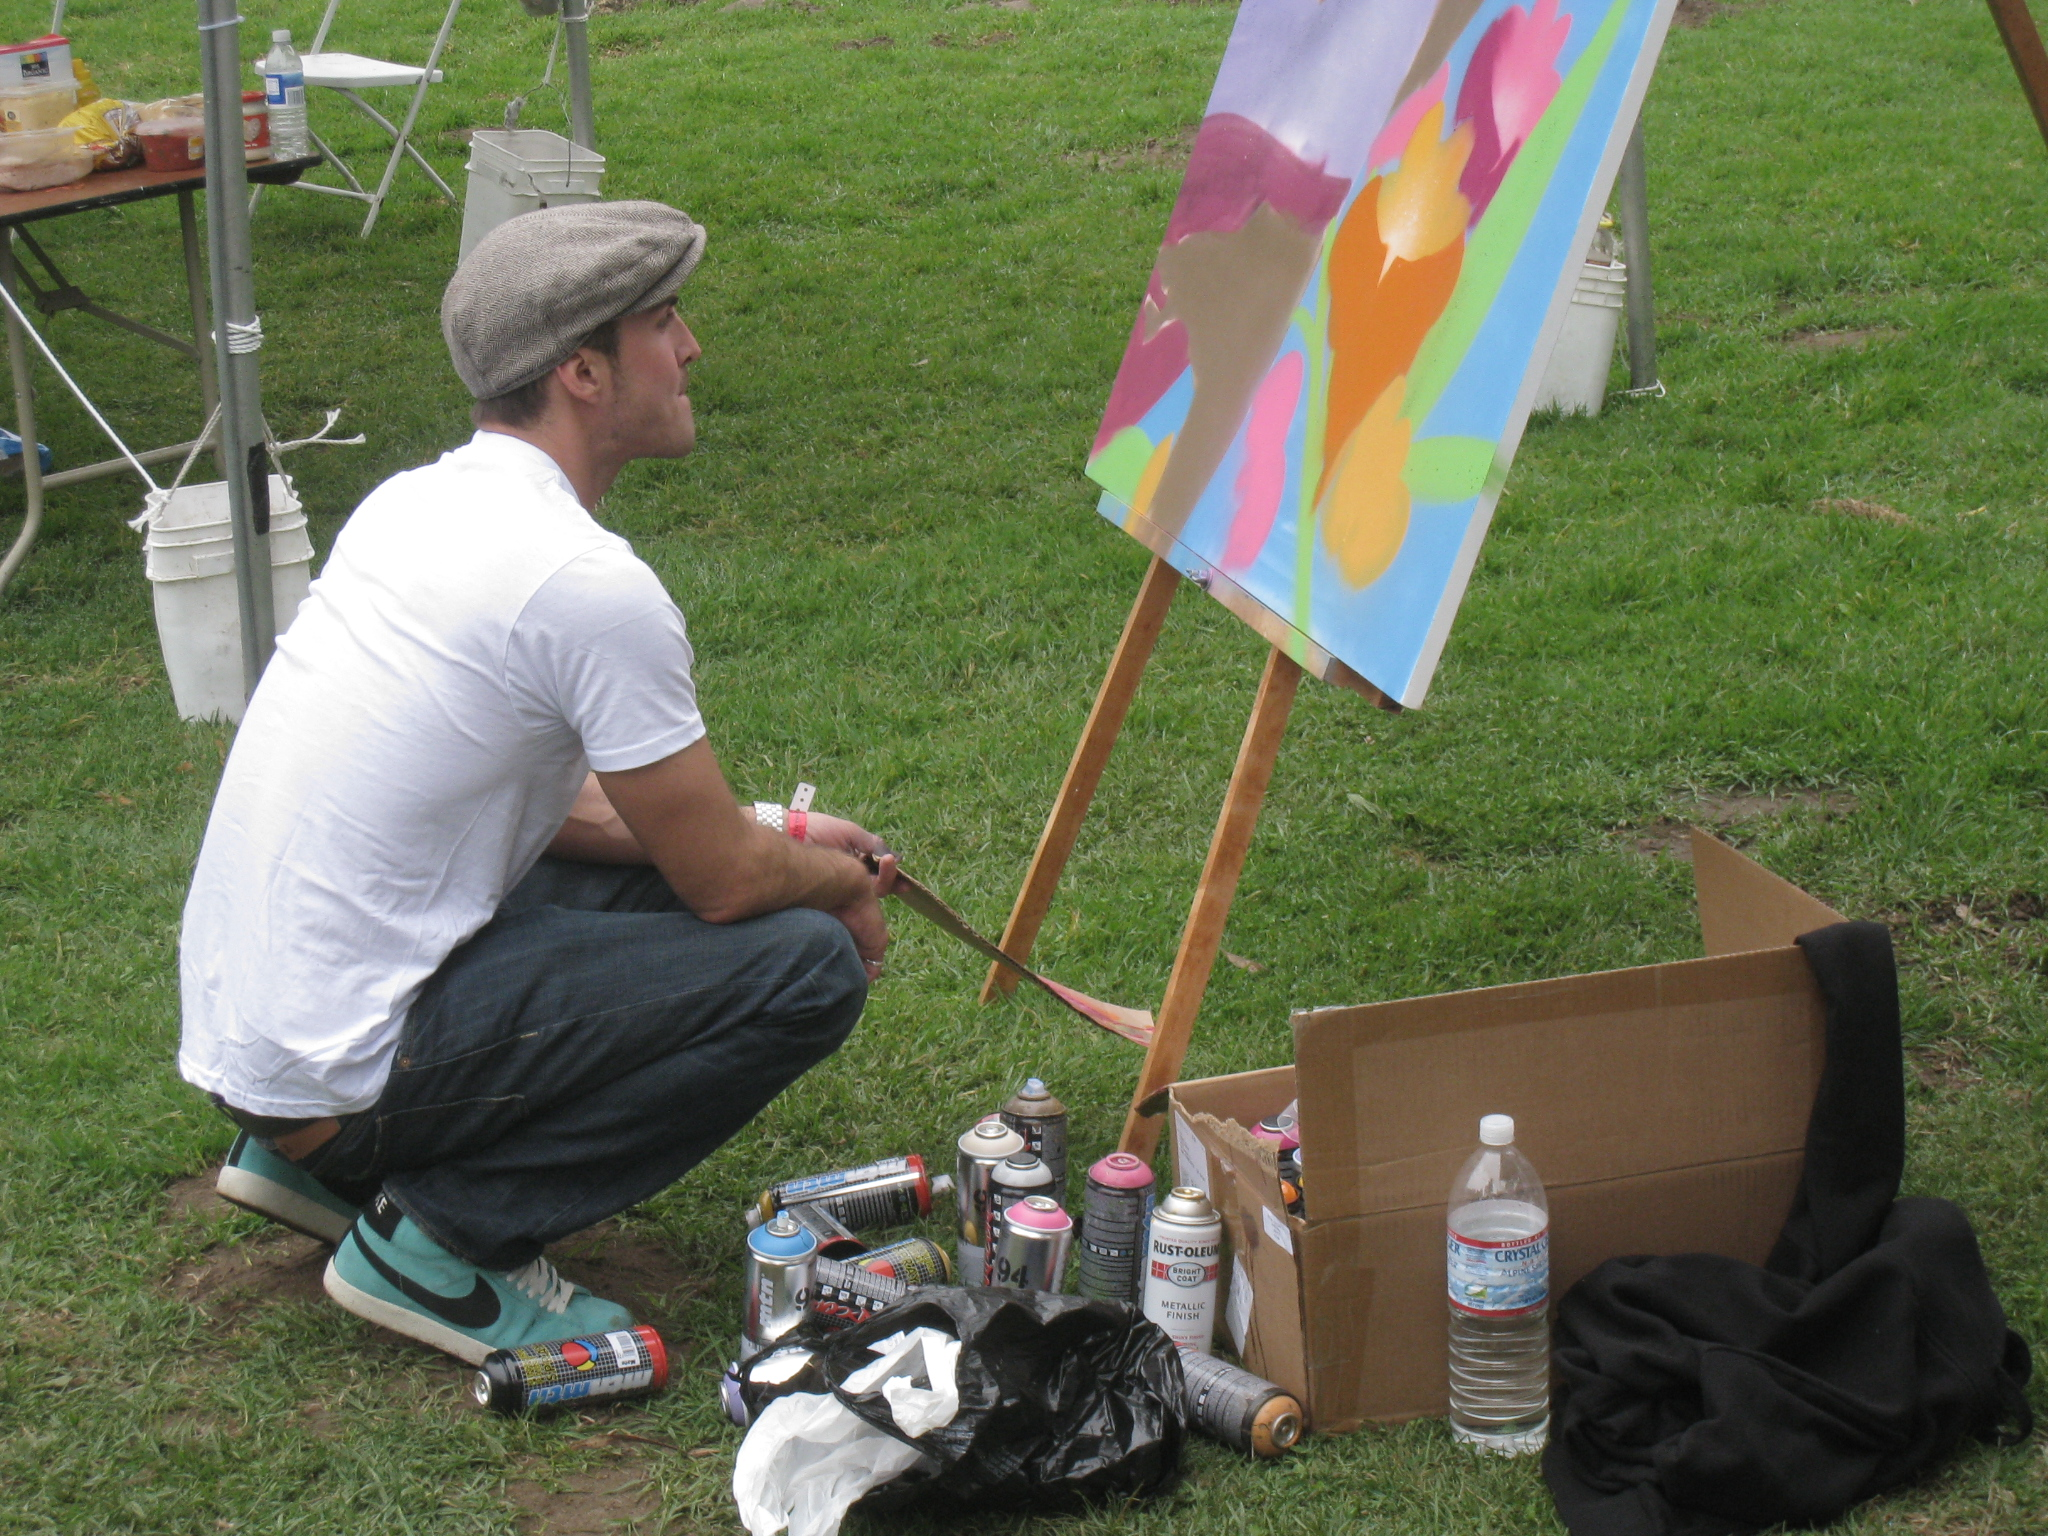 img 9546 Sam Flores, recap: live painting in Golden Gate Park upper playground Sam Flores power to the peaceful paint live painting graffiti fifty24sf gallery art